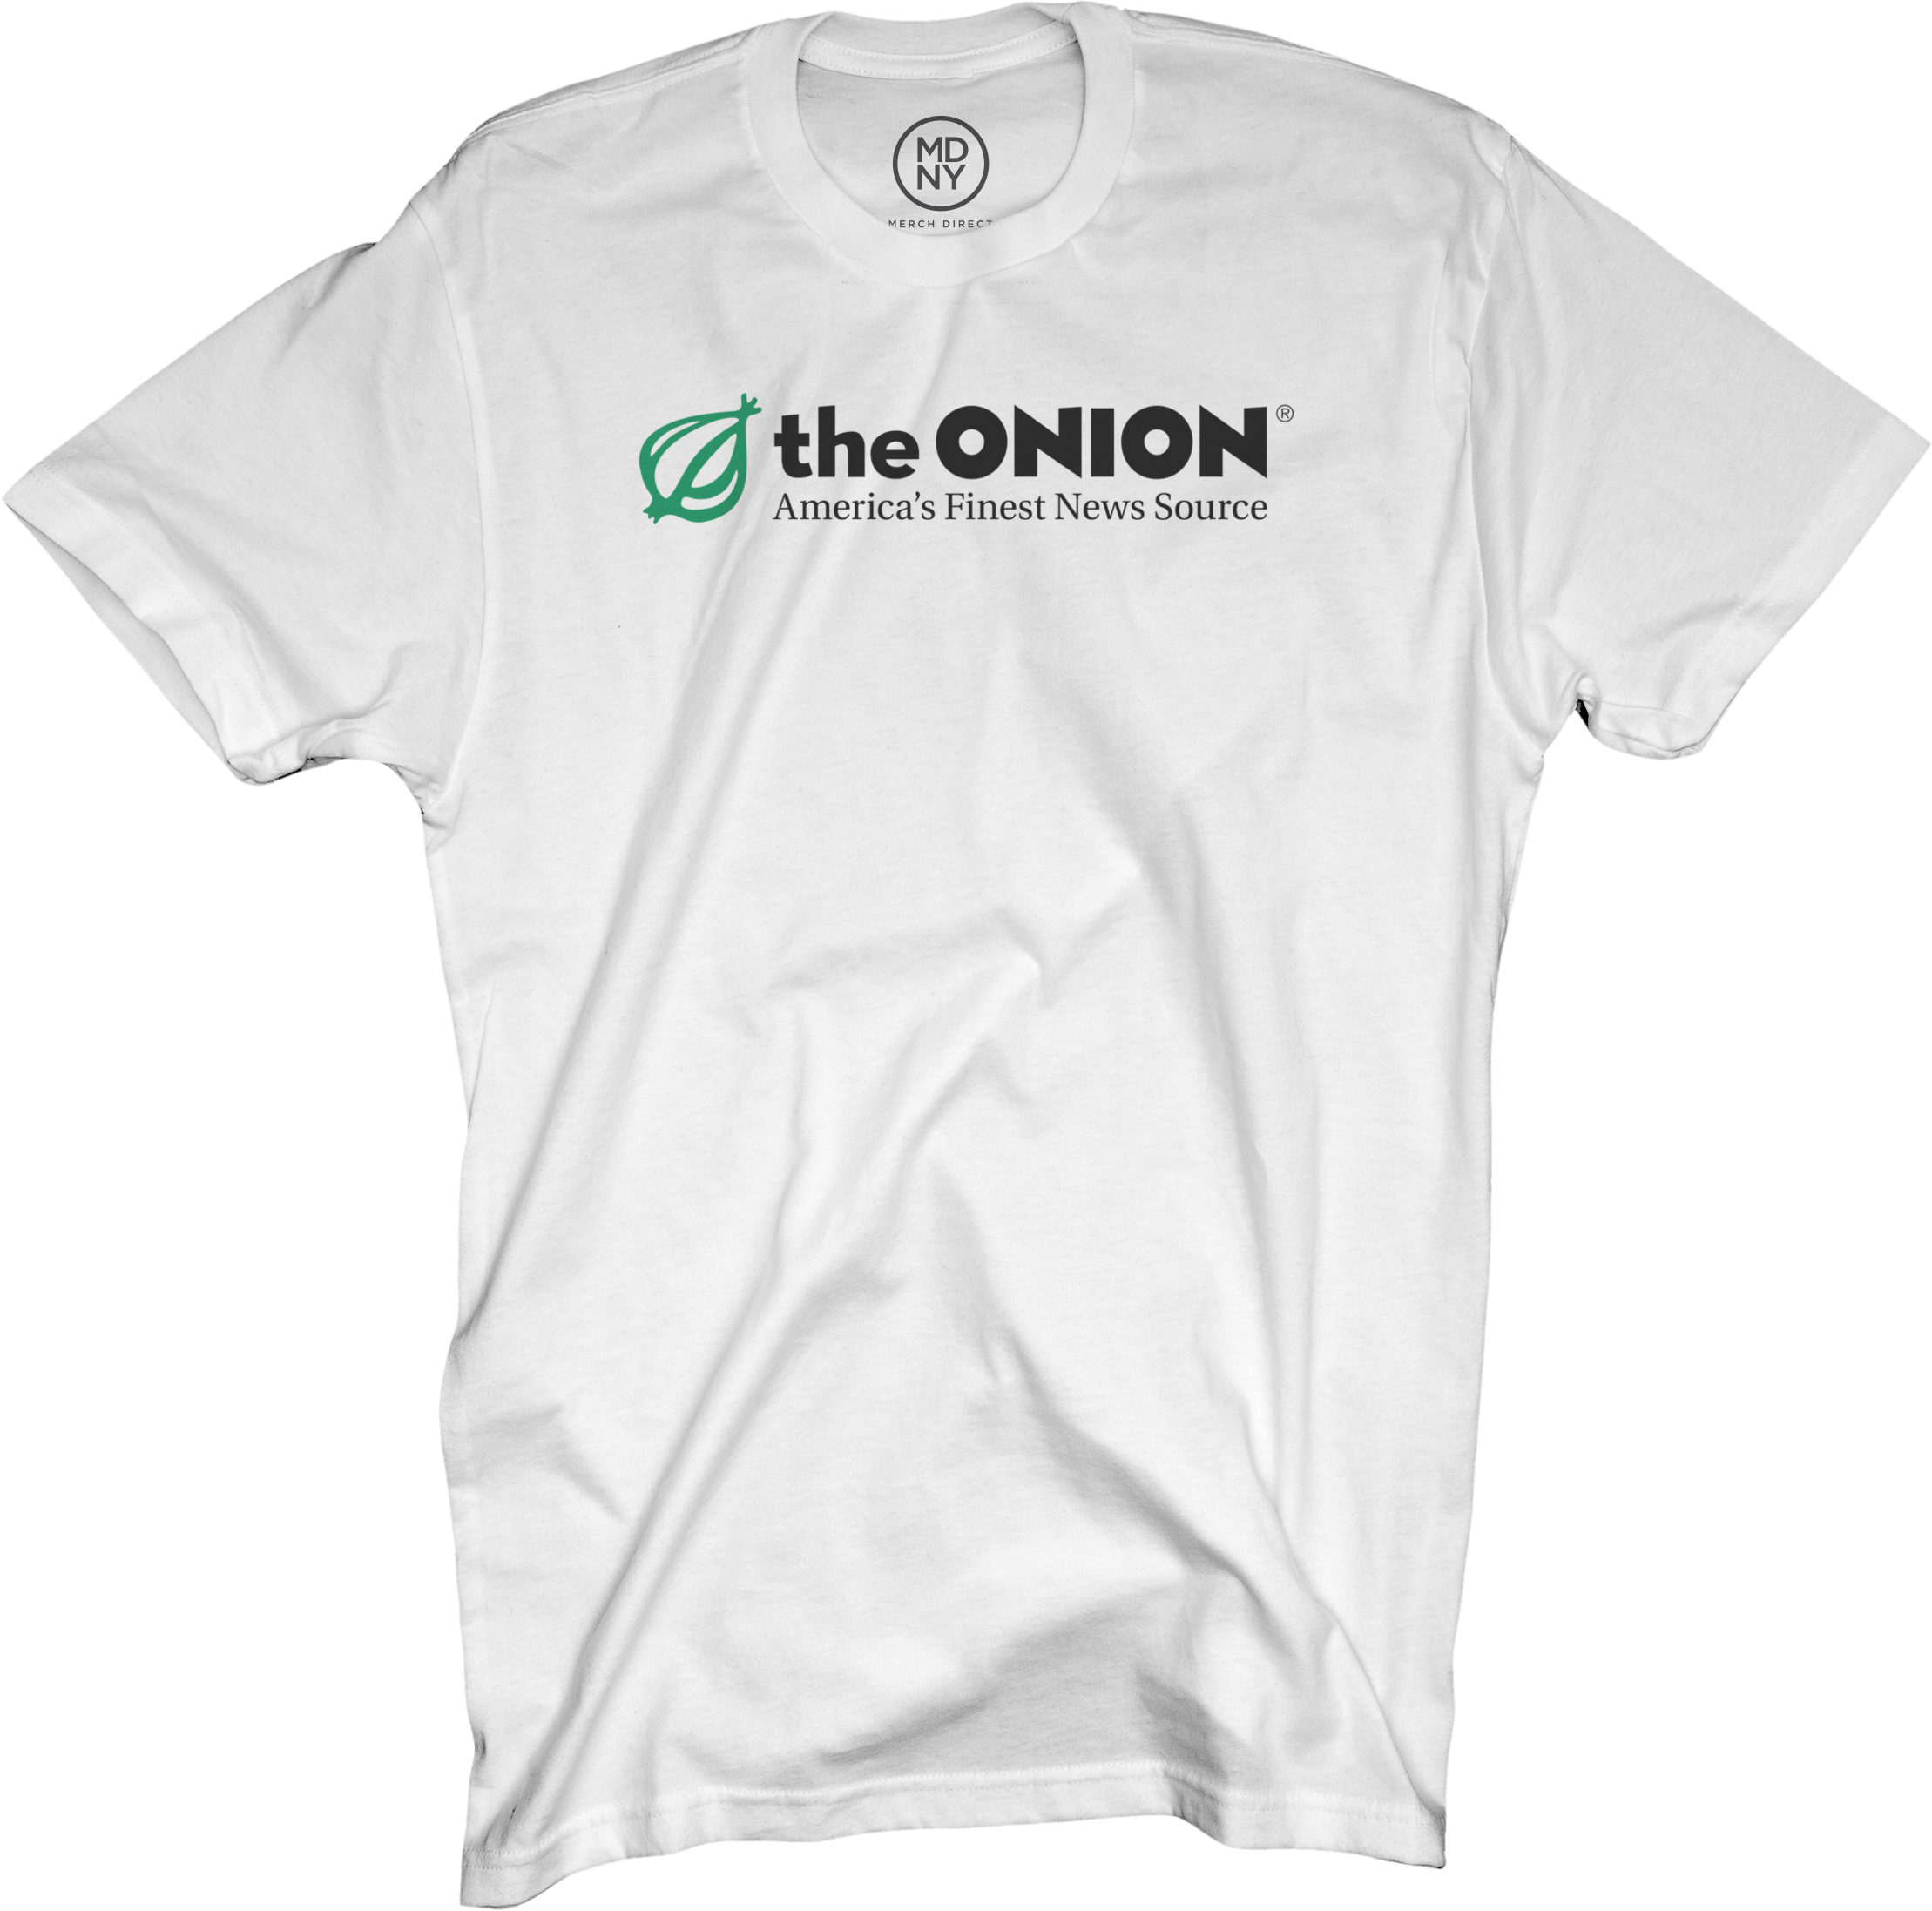 The Onion on White T-Shirt